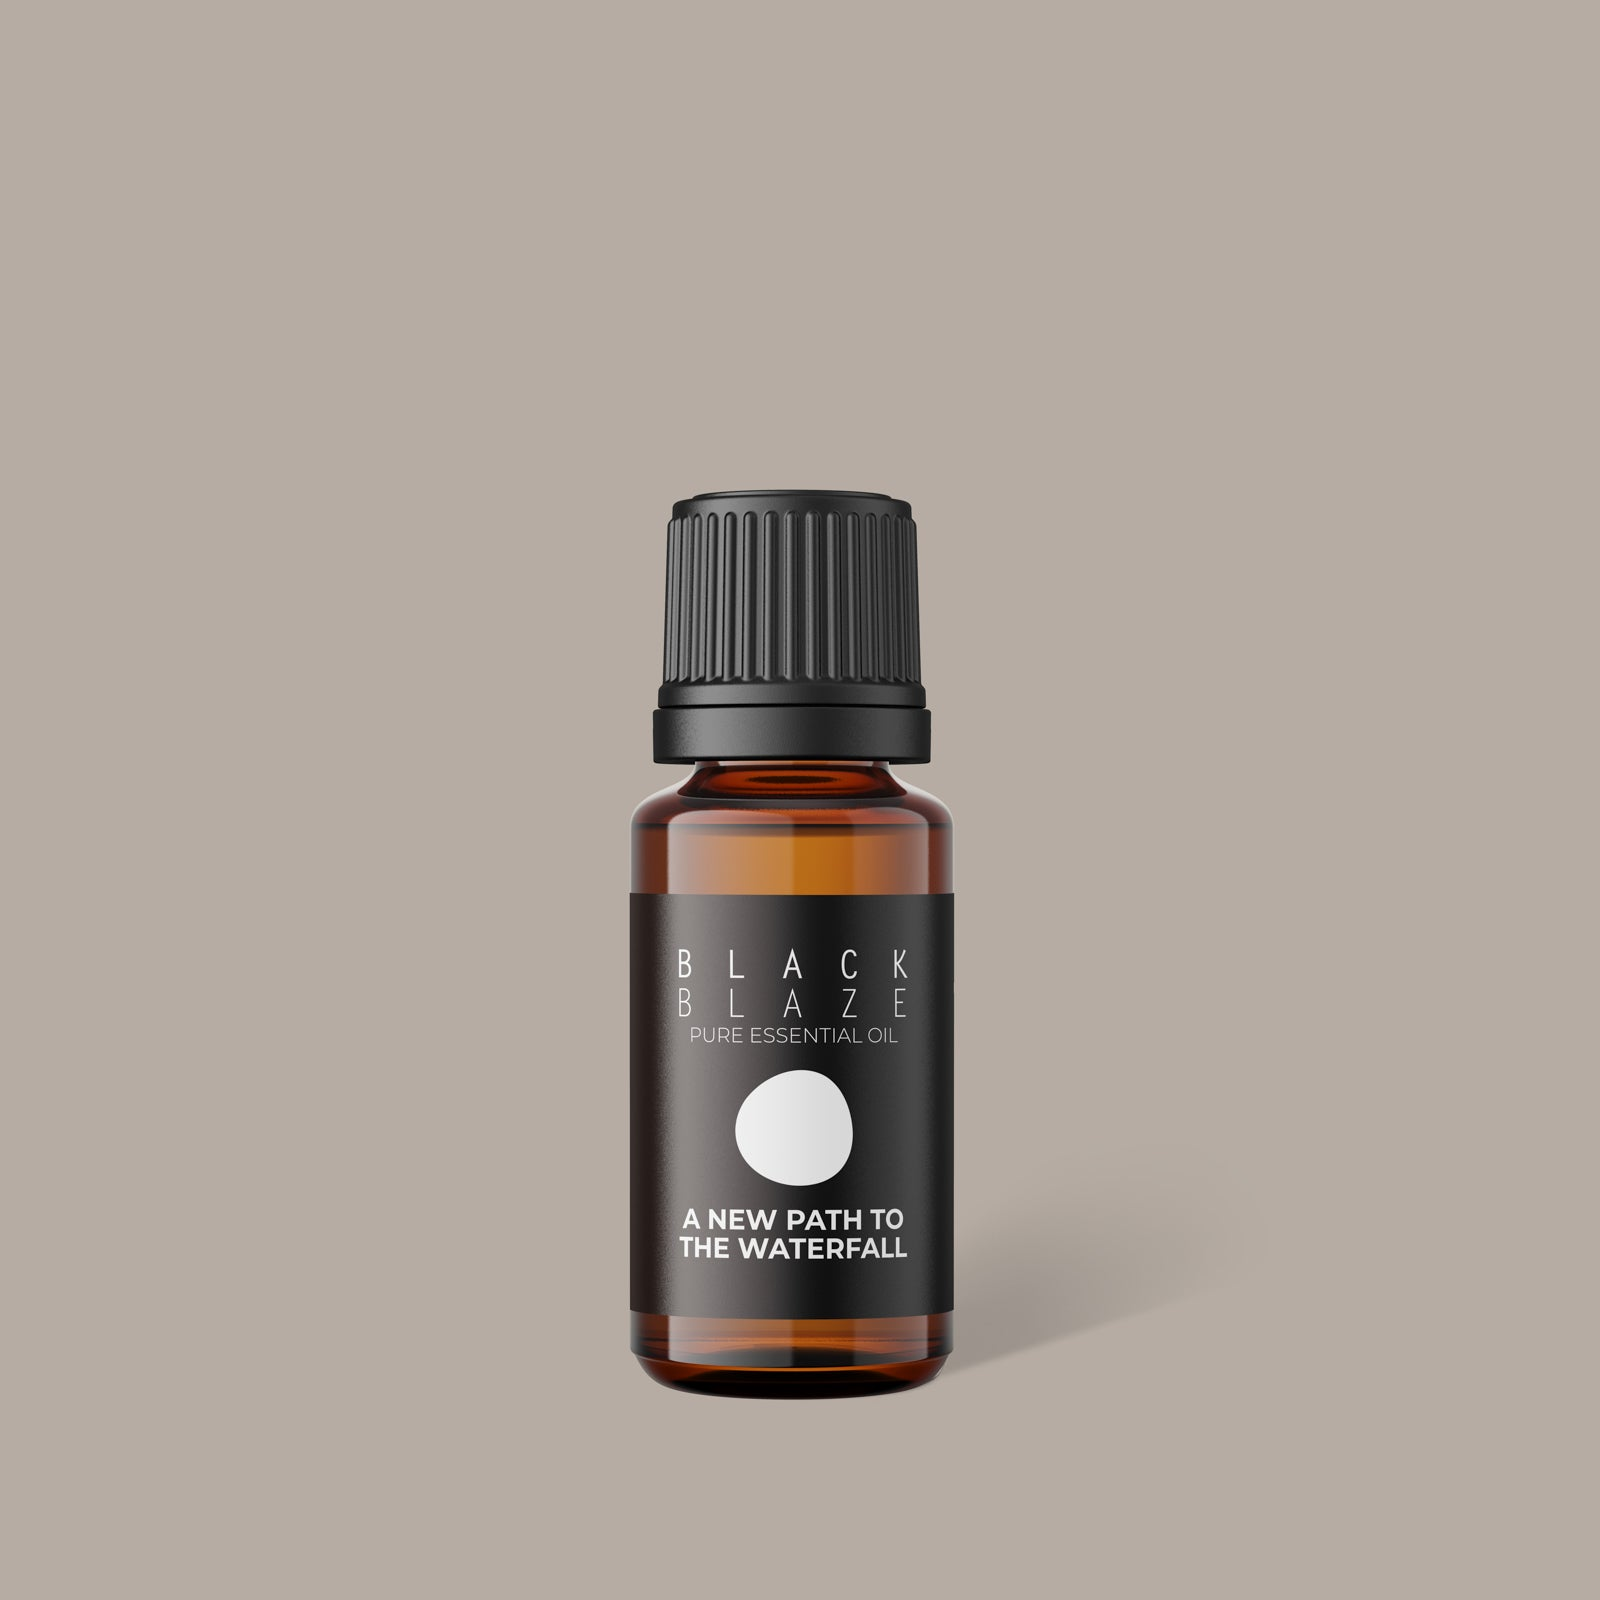 A New Path to The Waterfall Essential Oil